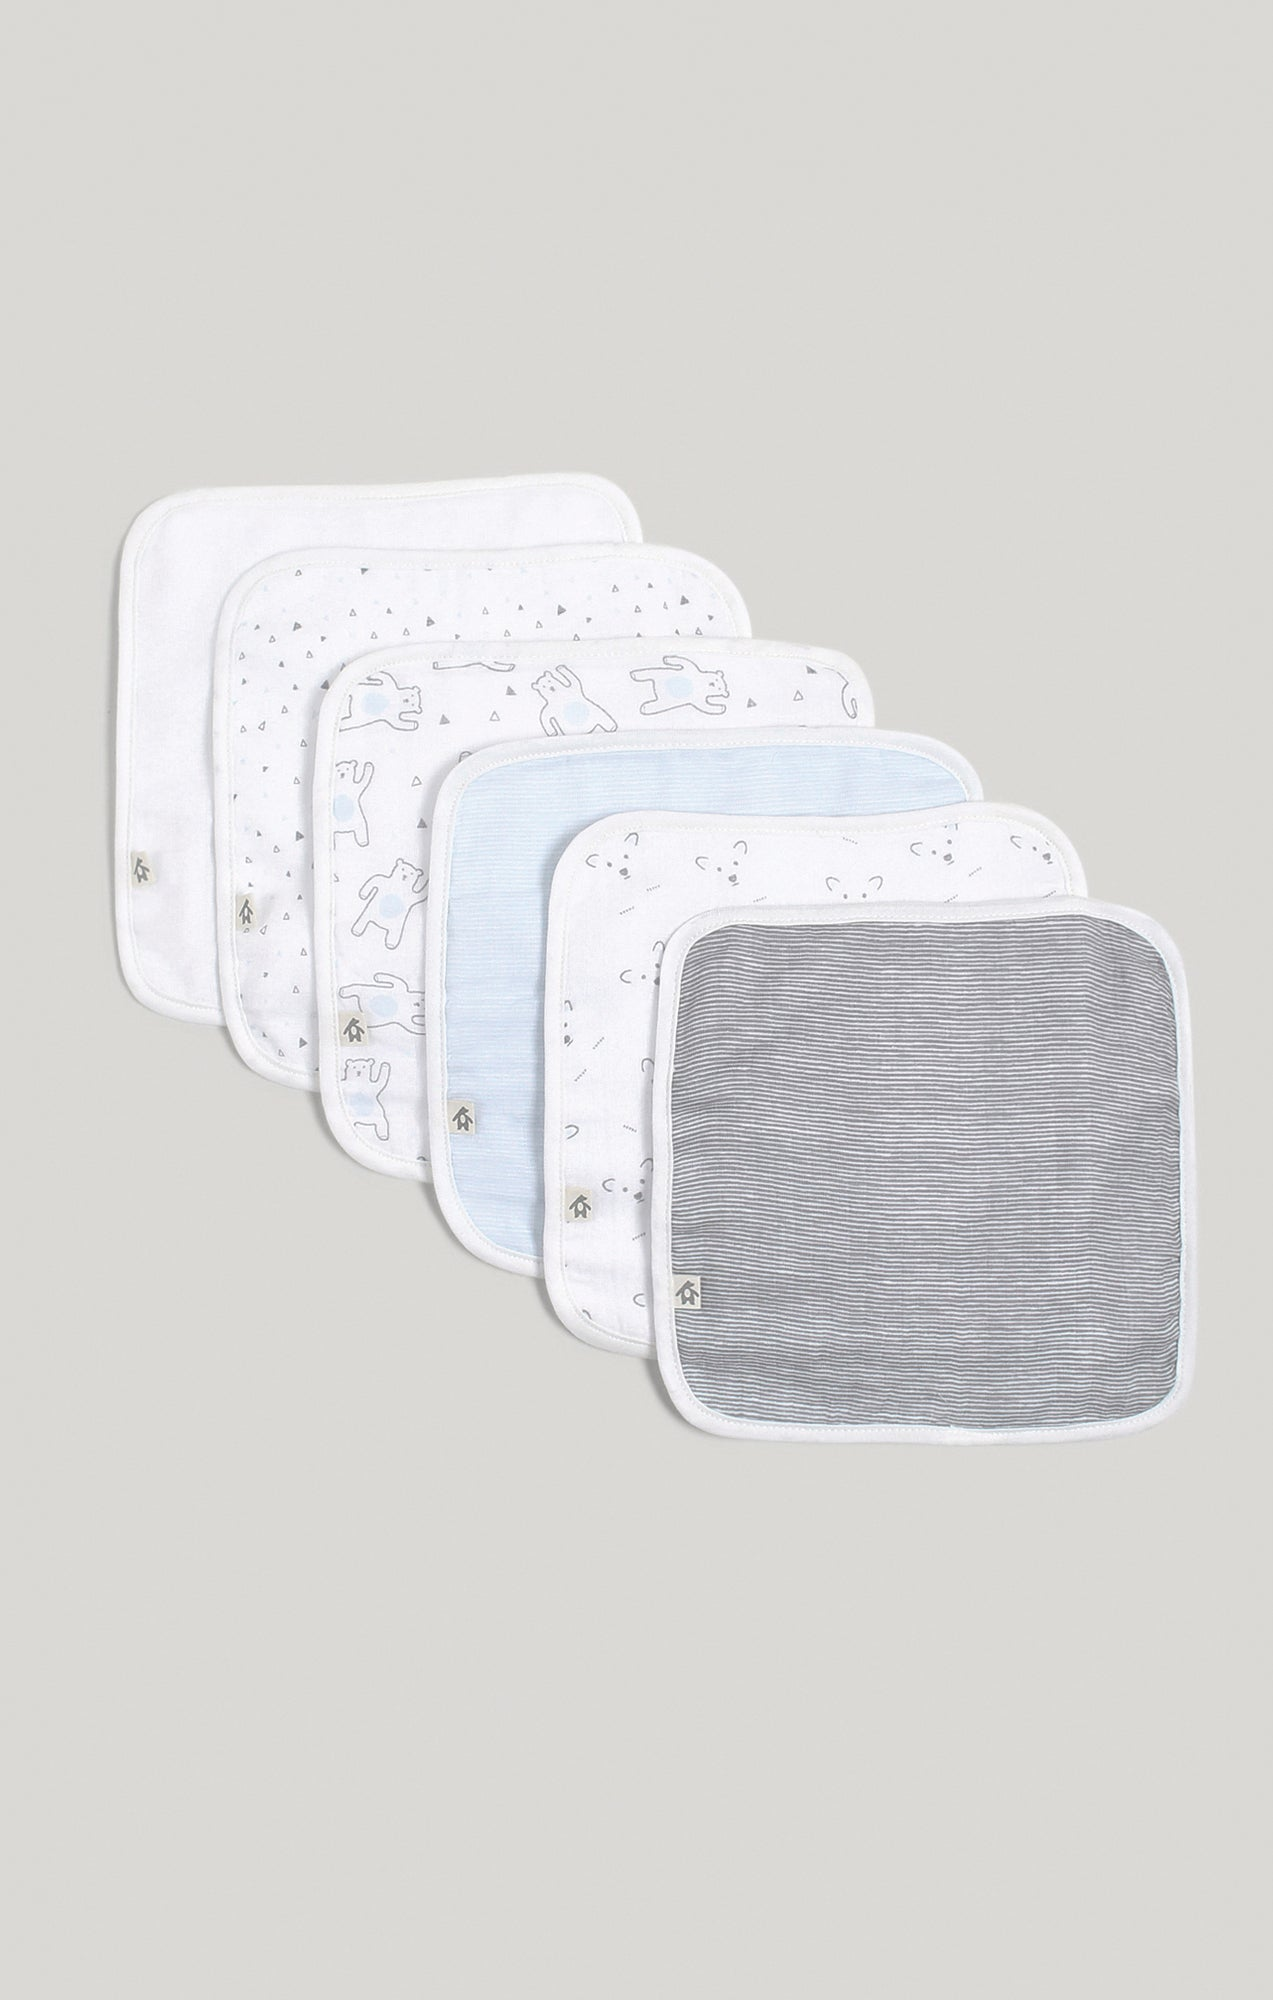 Baby Accessories - 6 Pk of Baby Boy Wash Cloths